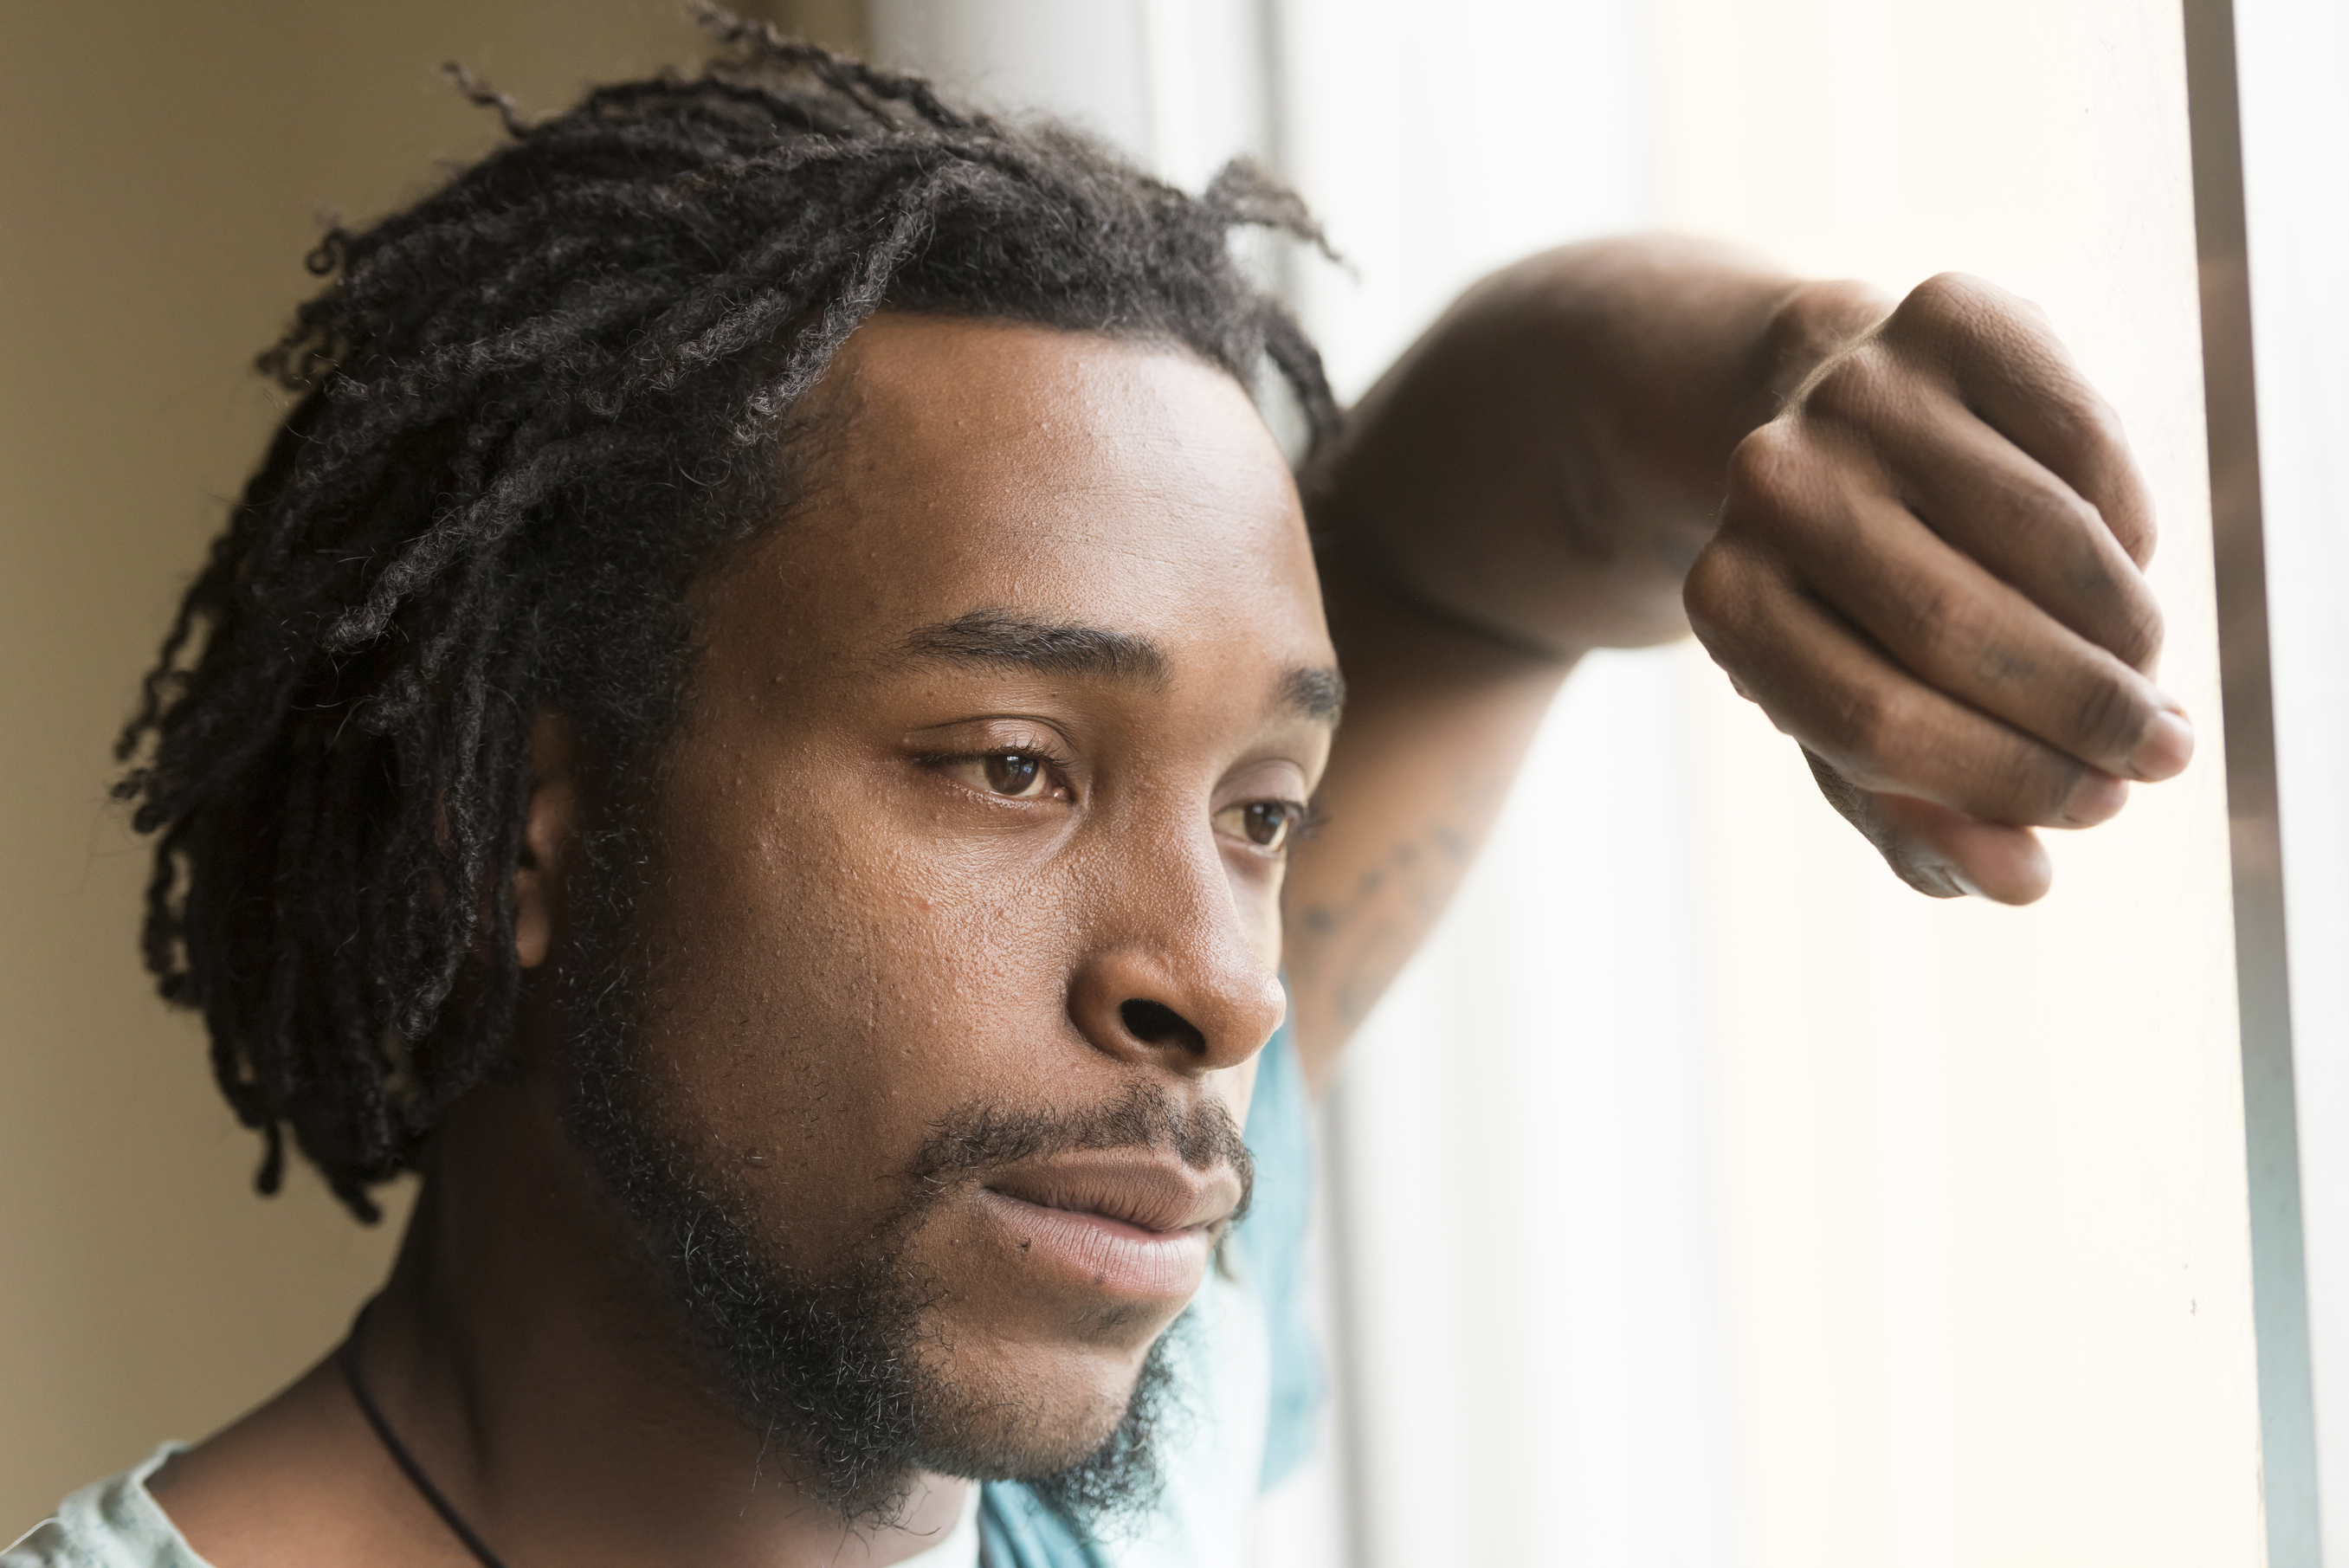 African American man looking through a window. (iStock Photo)